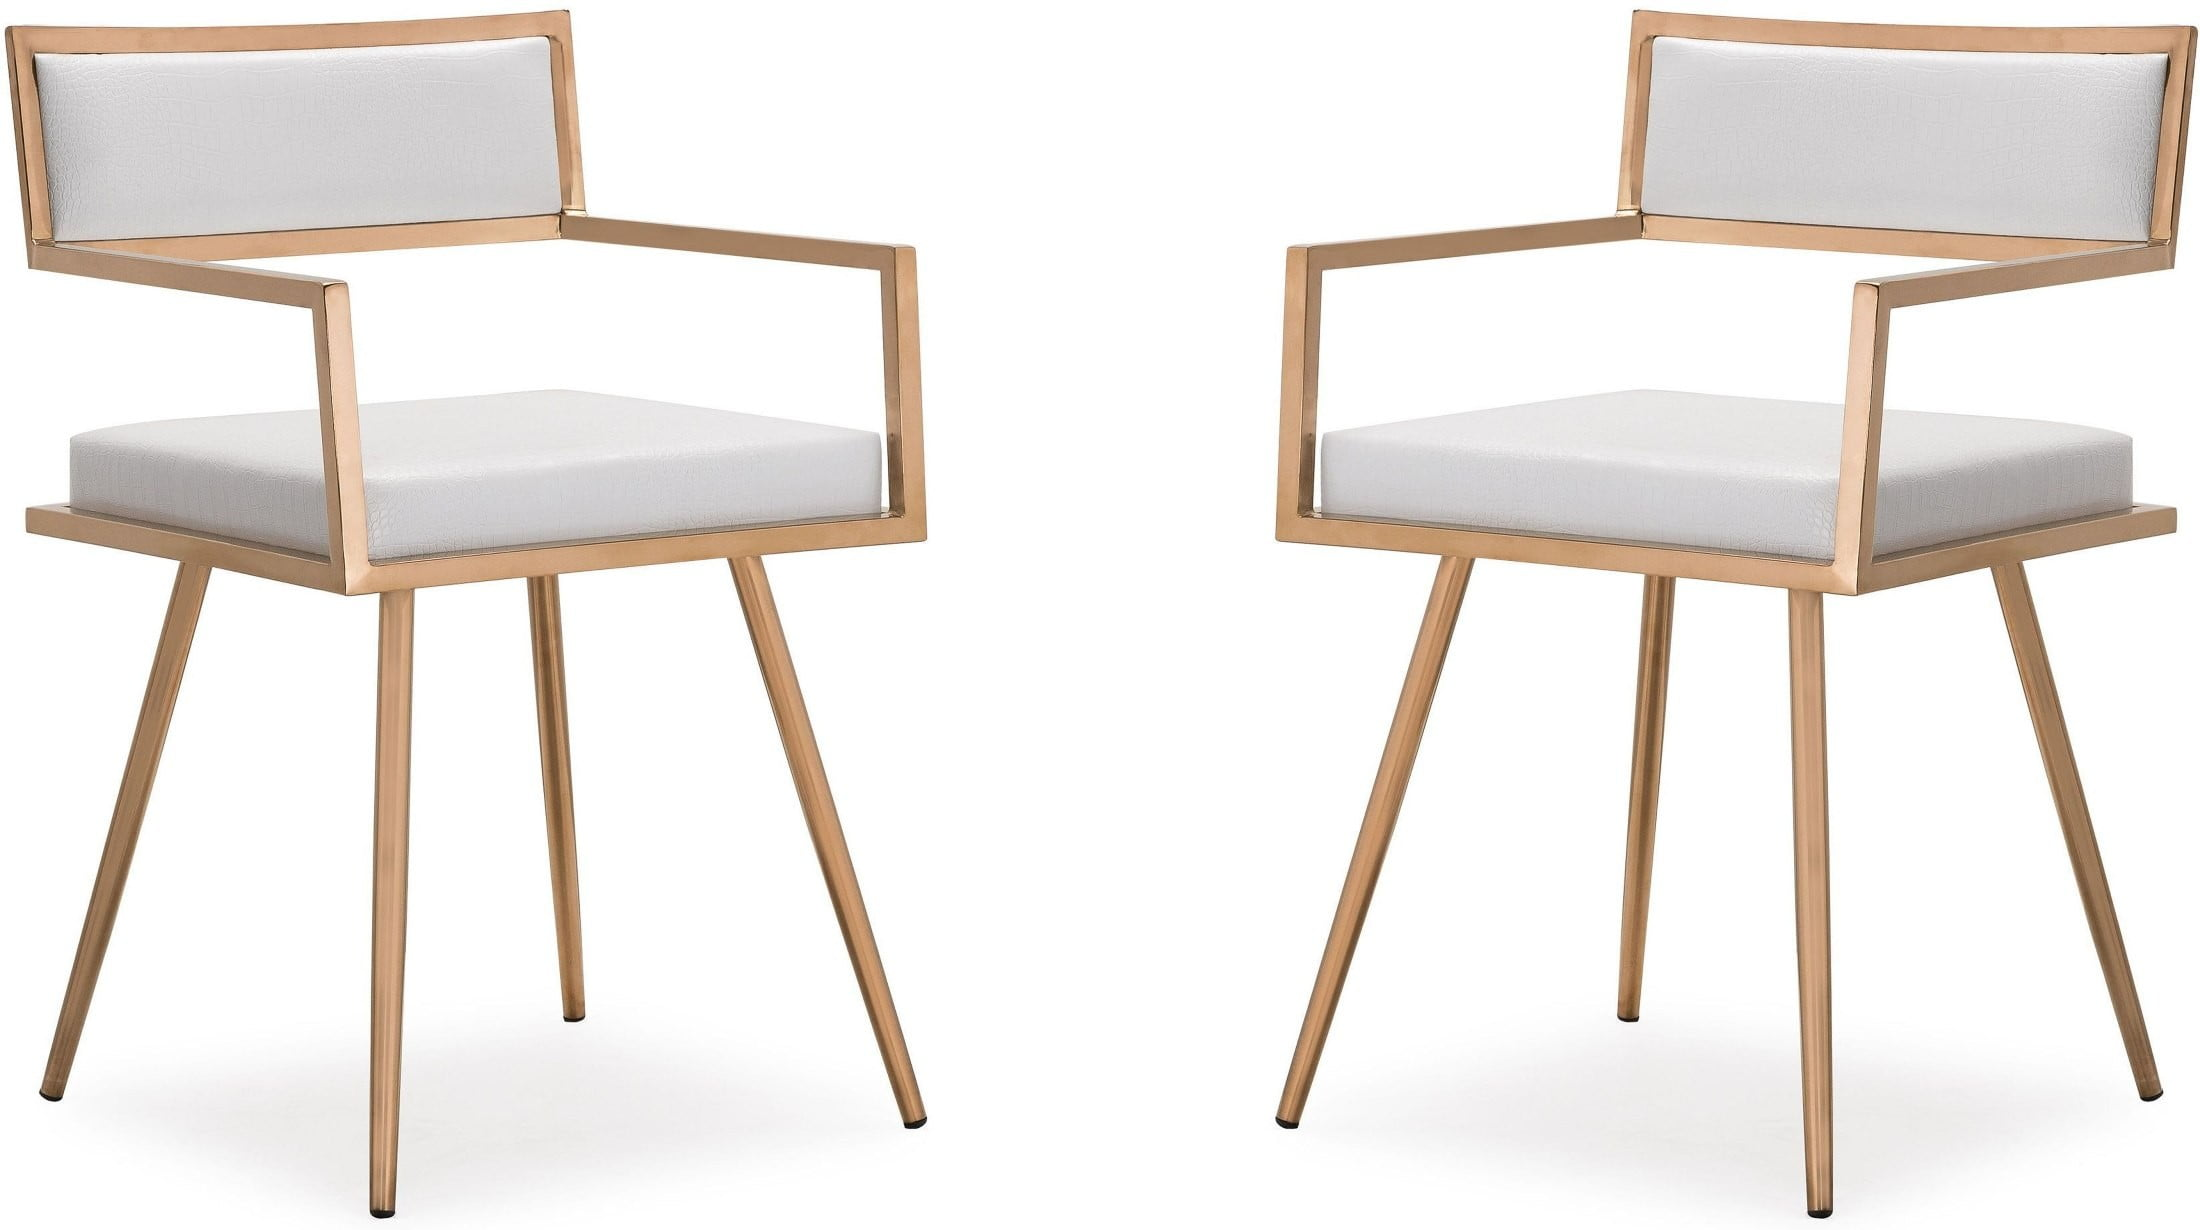 Marquee White Croc Arm Chair Set Of 2 From Tov Coleman